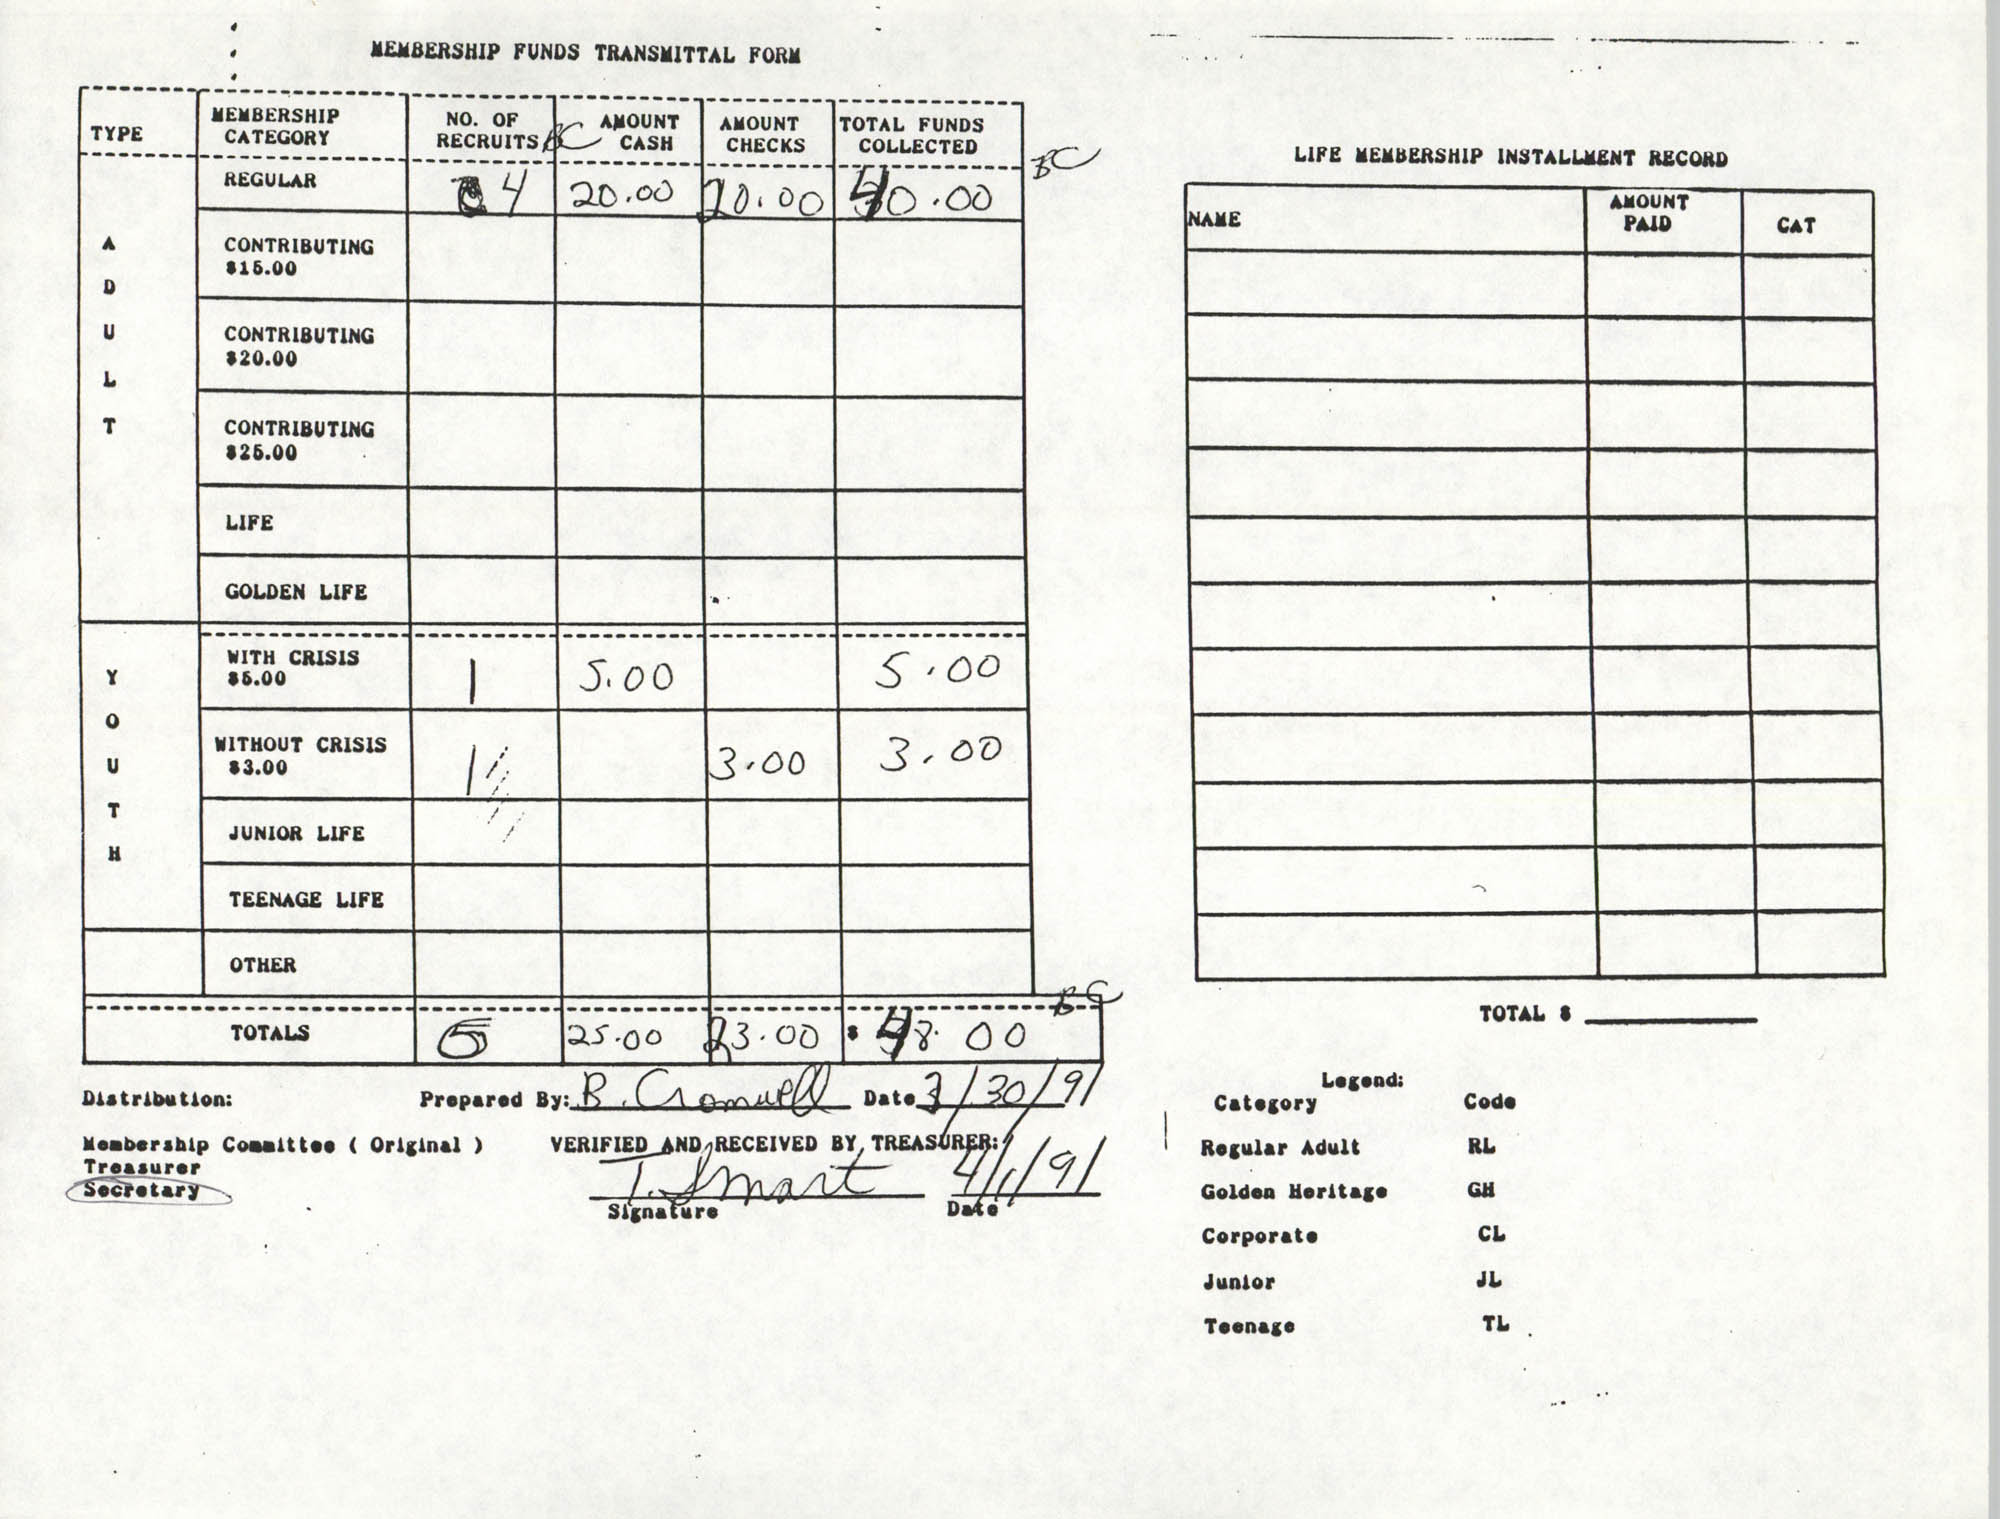 Charleston Branch of the NAACP Funds Transmittal Forms, March 1991, Page 16